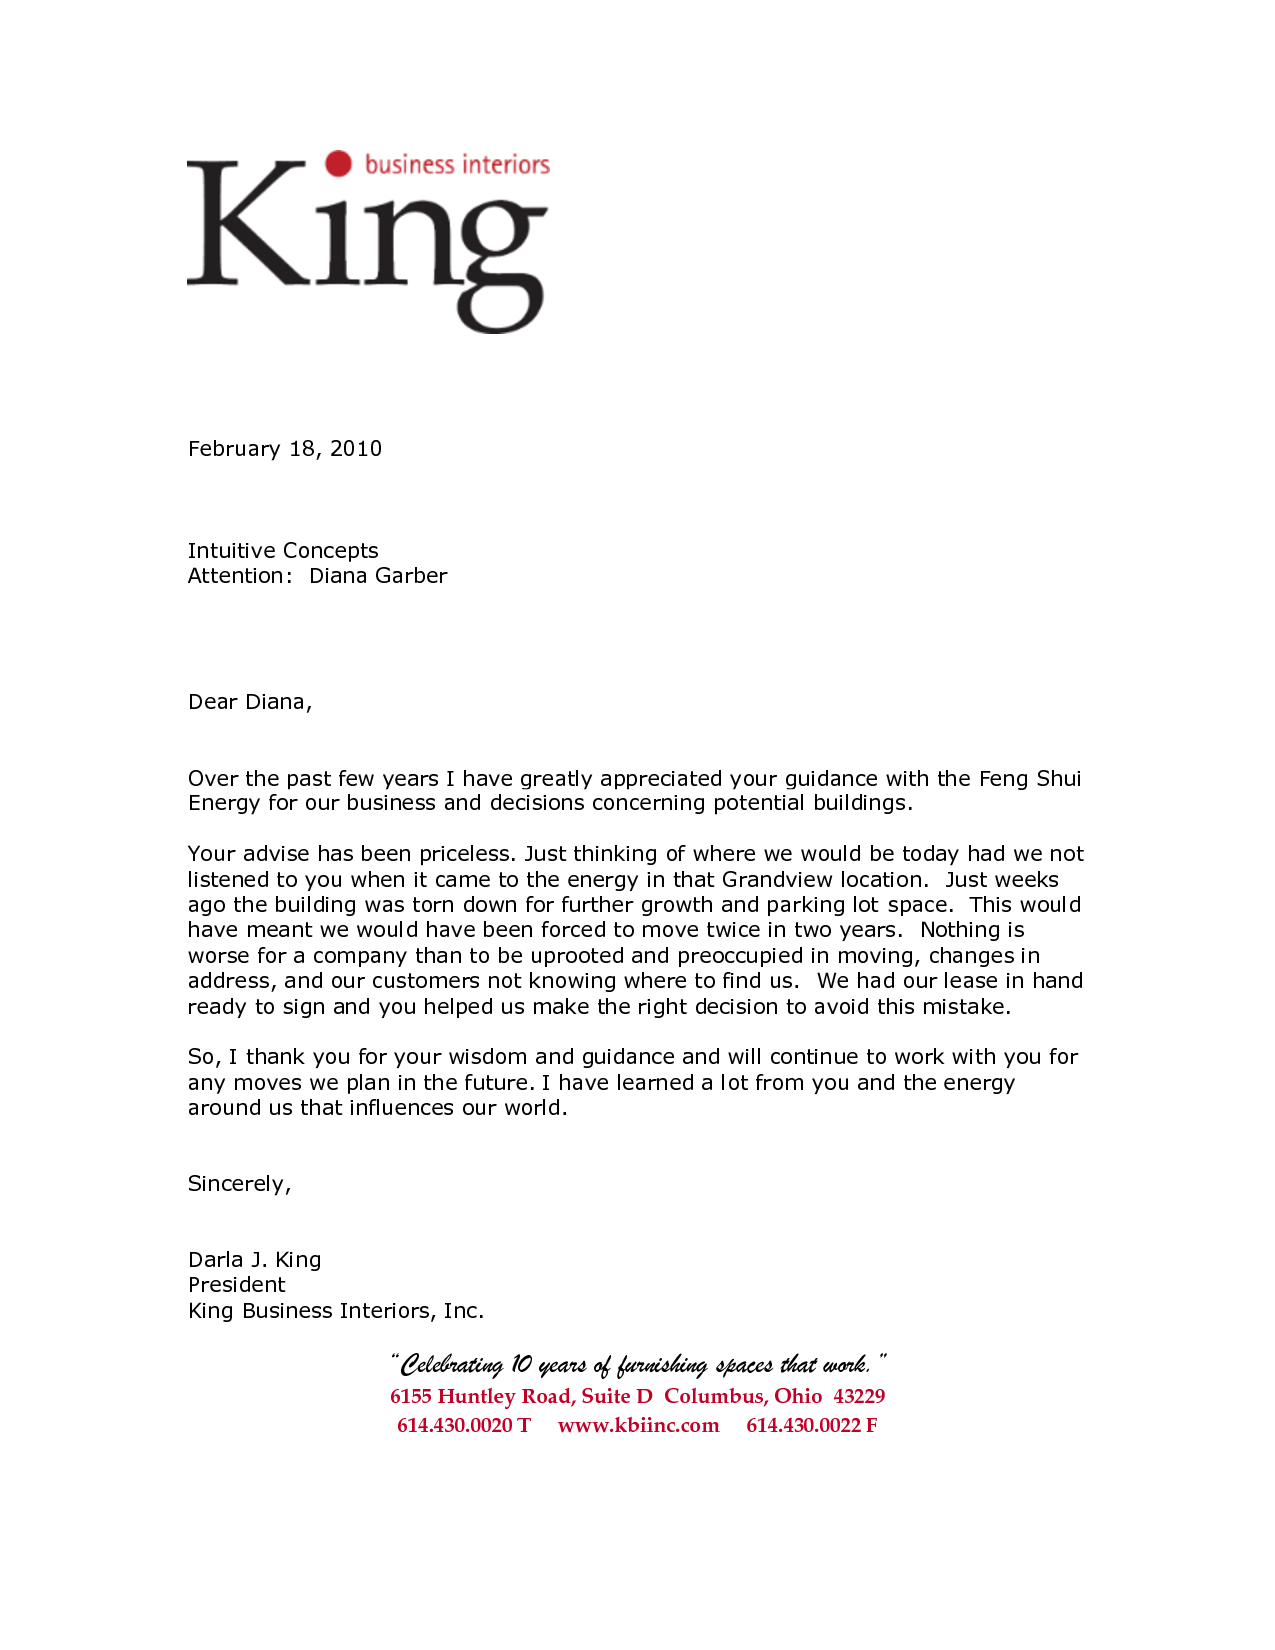 Letter of recommendation for business tiredriveeasy letter of recommendation for business spiritdancerdesigns